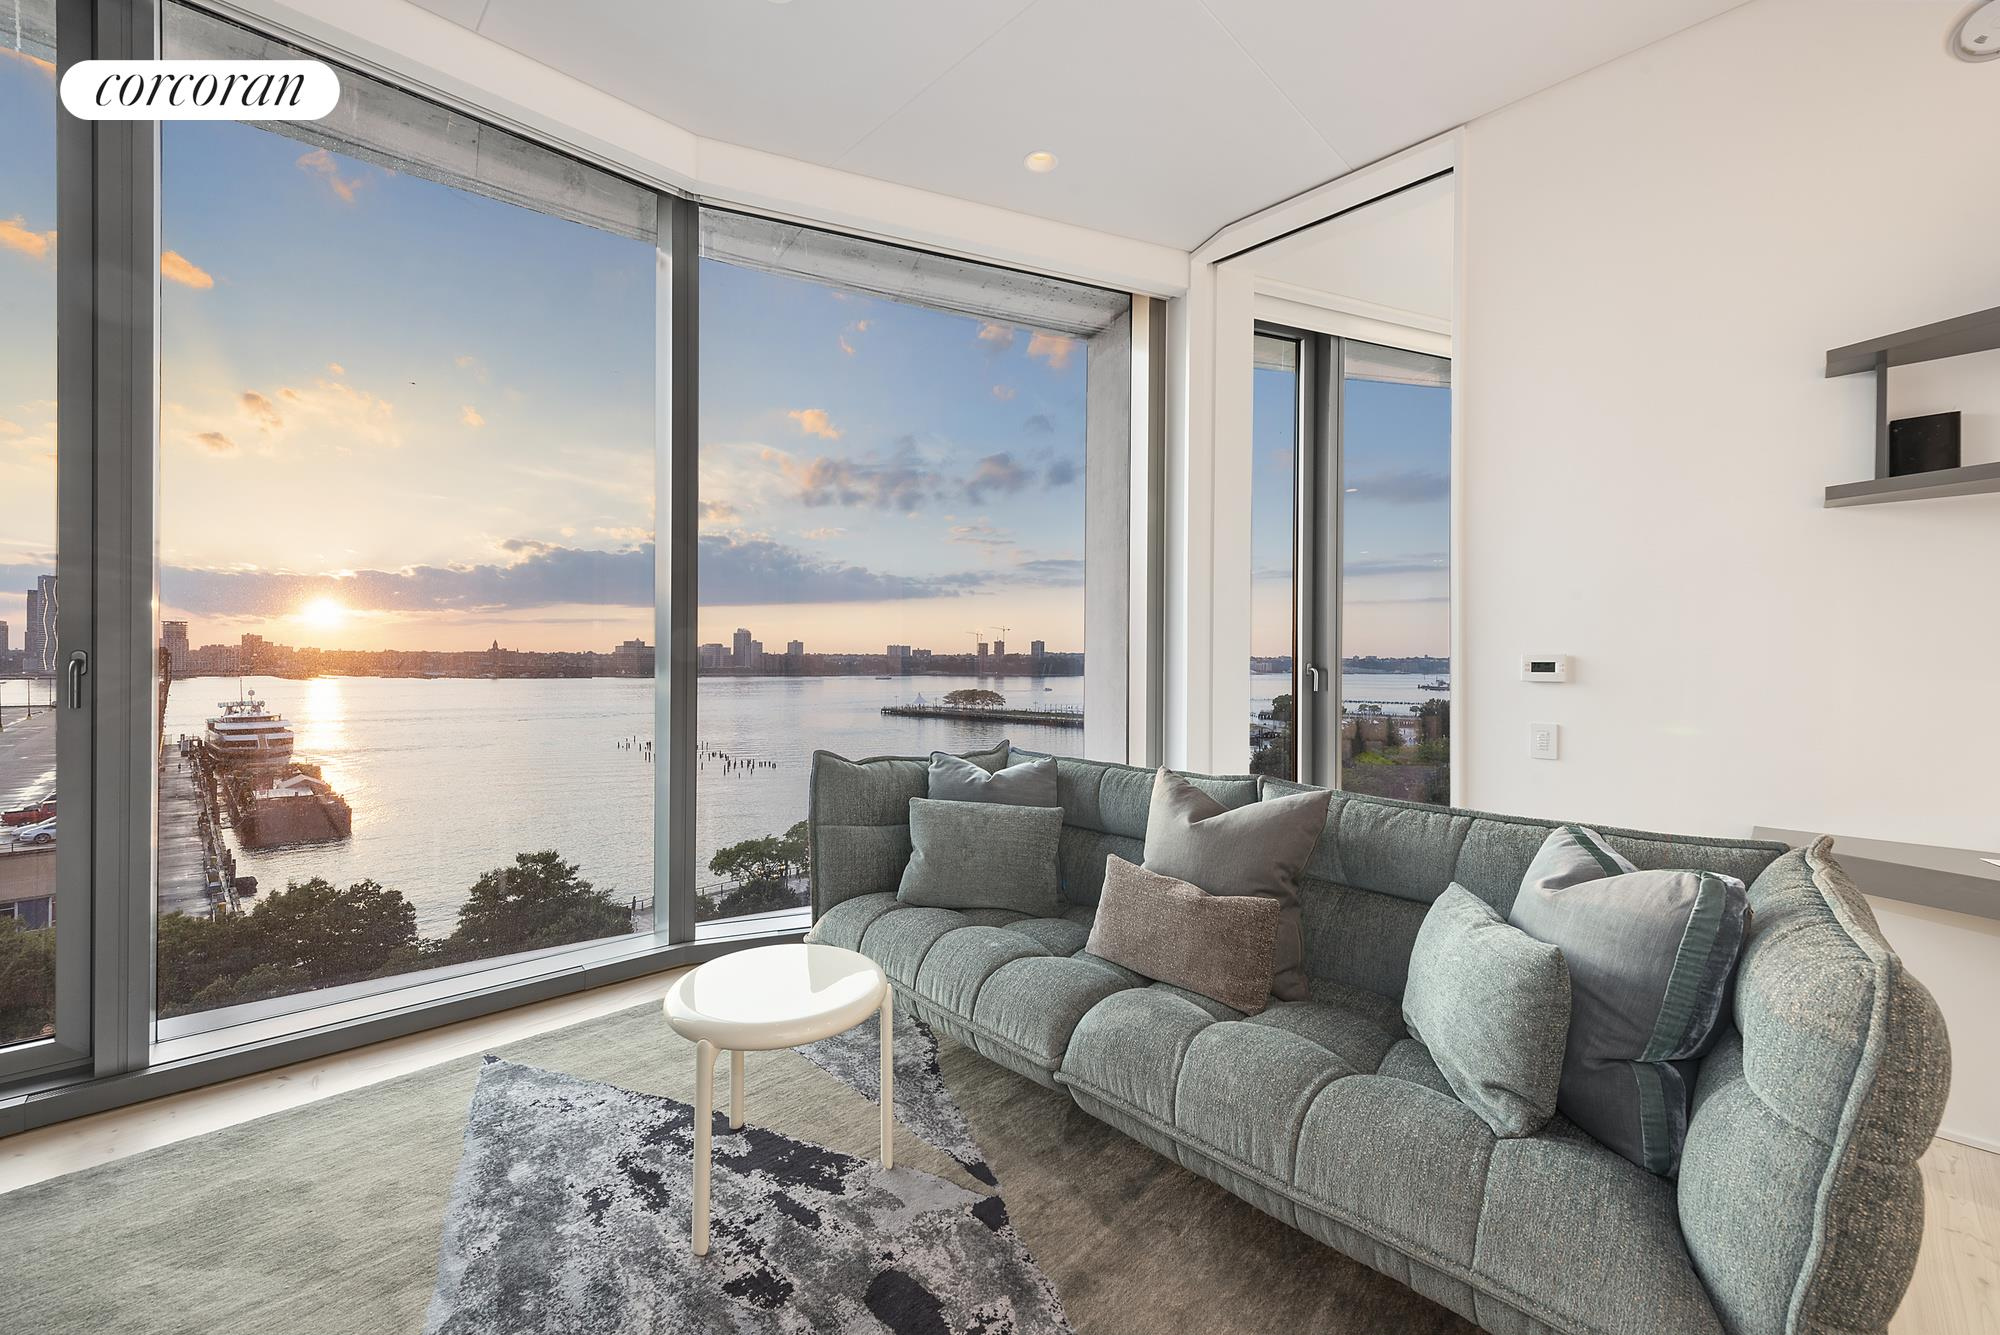 Apartment for sale at 160 Leroy Street, Apt NORTH9B